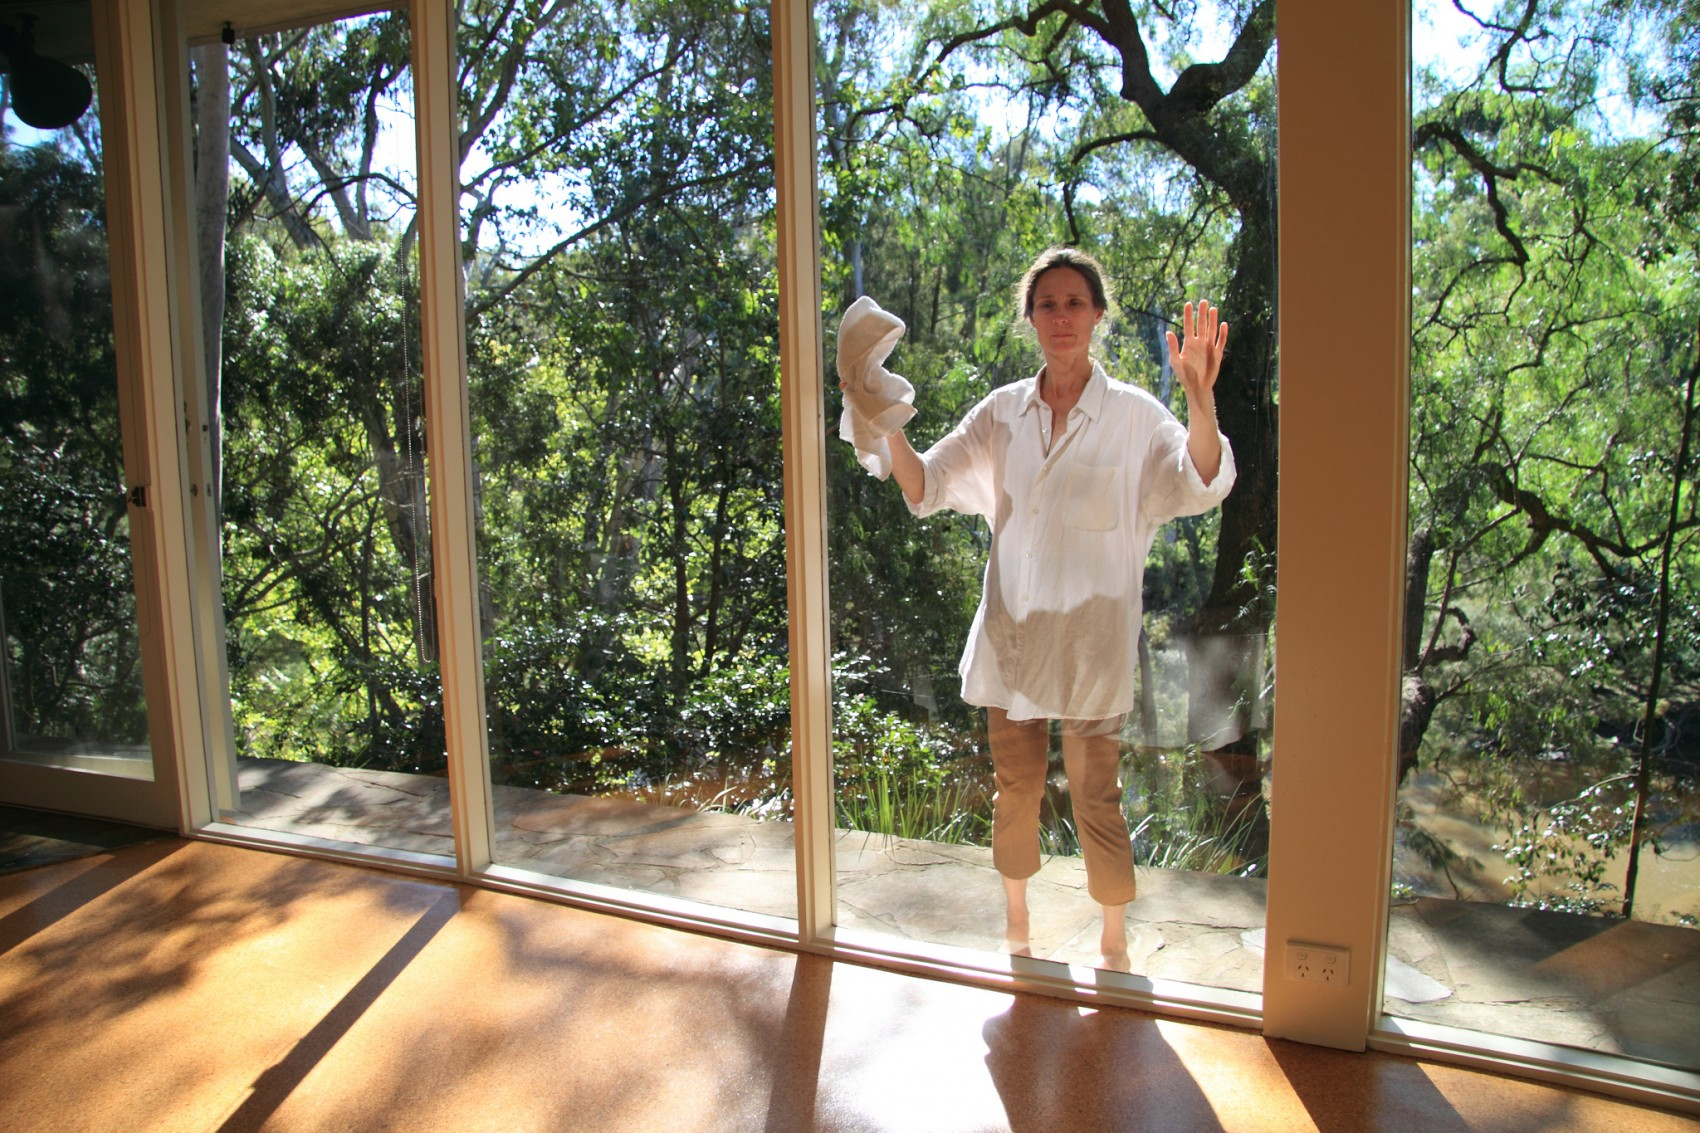 Woman wearing white shirt with arms raised and pressed against long window with tree foliage and blue sky behind her